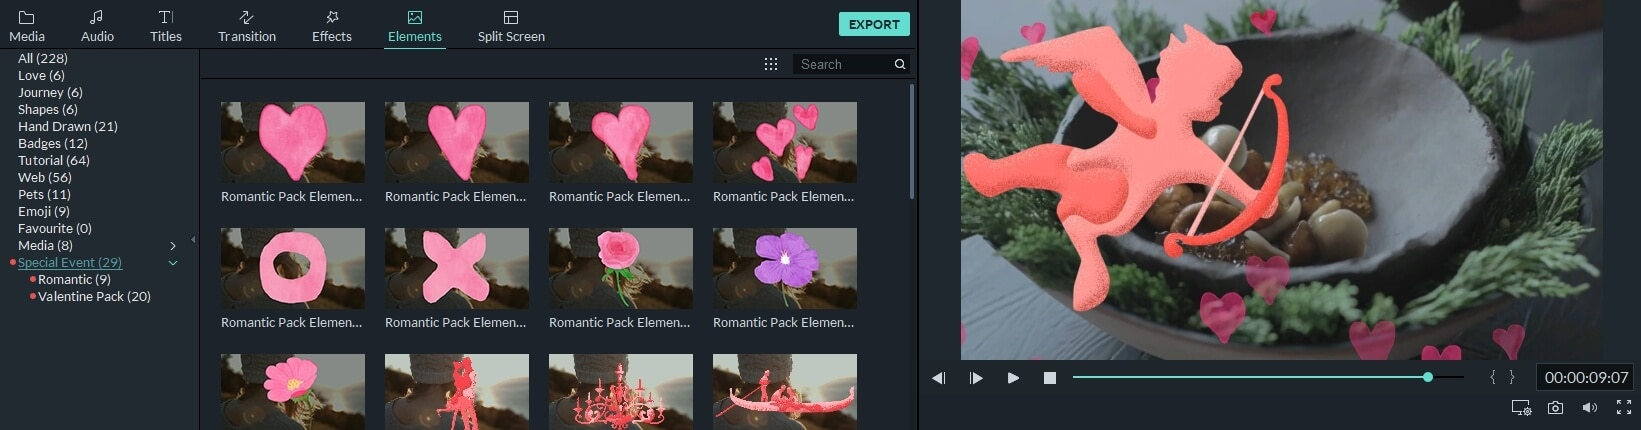 Drag and drop valentines element to video in Filmora9